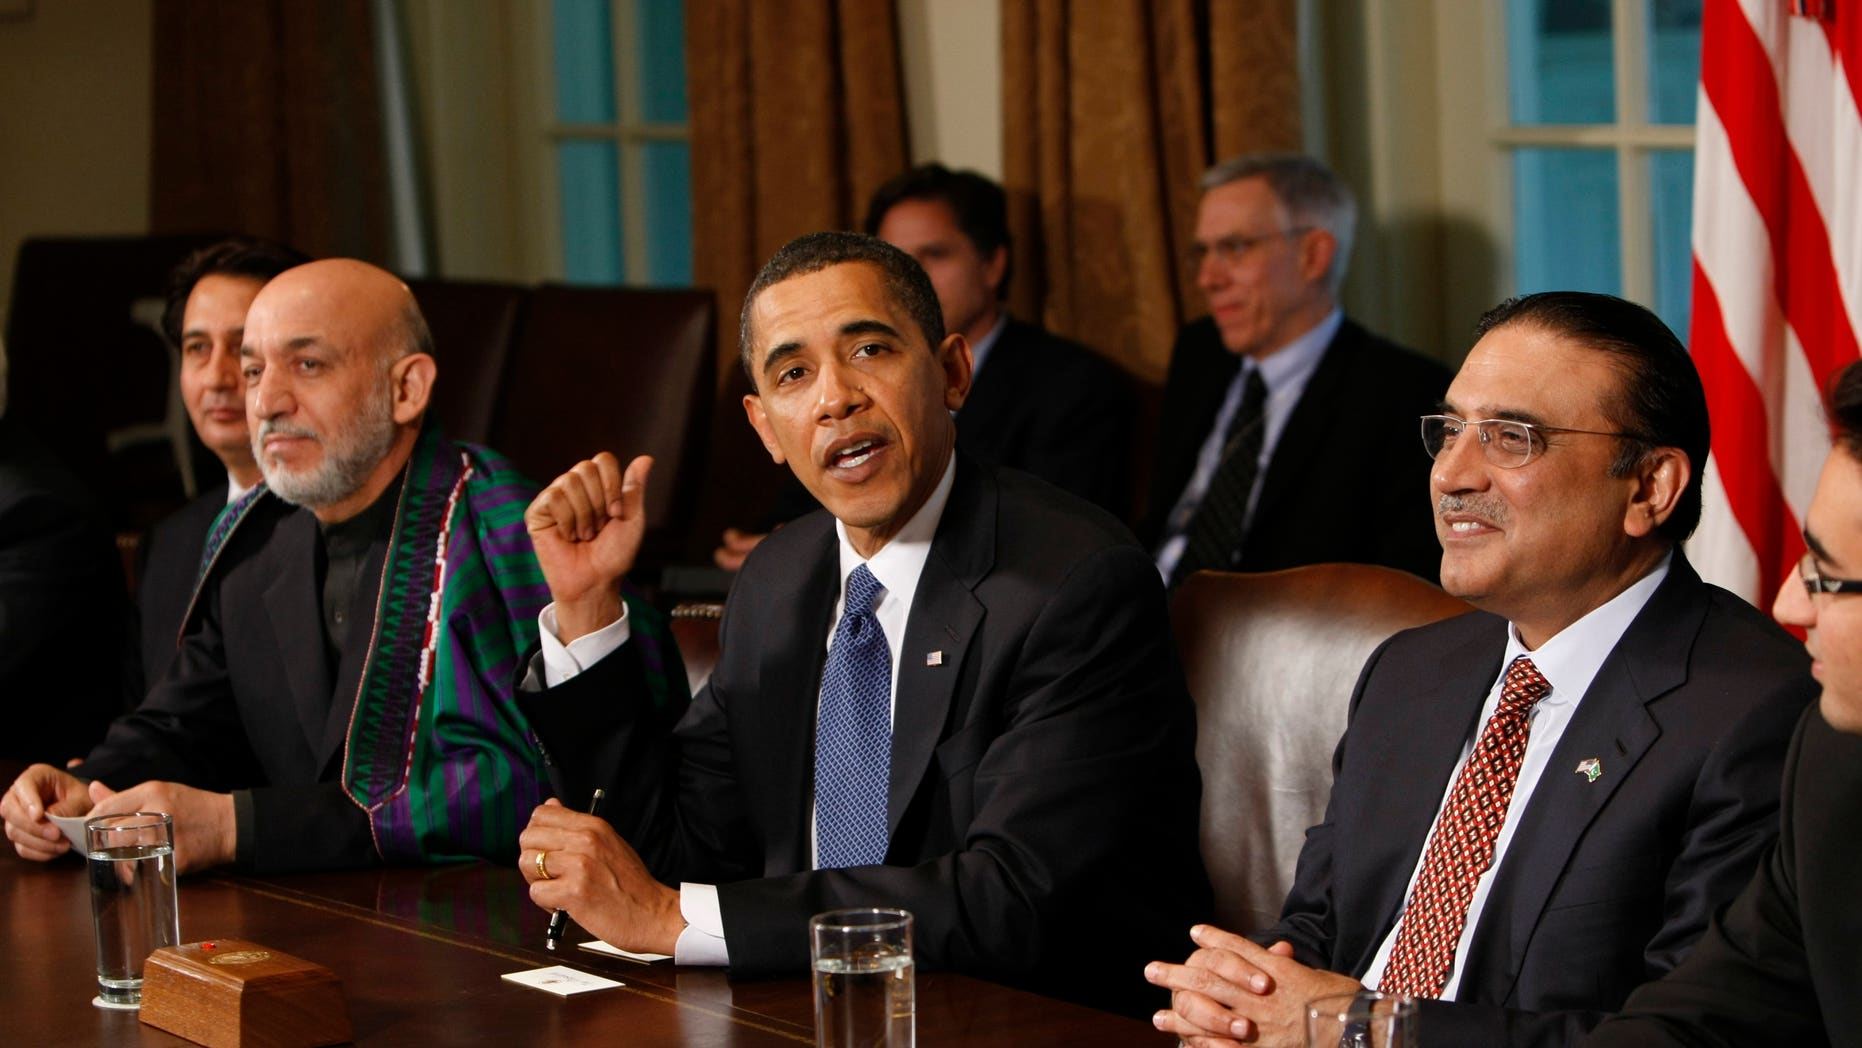 In this Wednesday, May 6, 2009 file photo, U.S. President Barack Obama, center, flanked by Afghan President Hamid Karzai, left, and Pakistani President Asif Ali Zardari gestures in the Cabinet Room of the White House in Washington. The United States has been pushing its powerhouse ally Saudi Arabia to help stabilize Pakistan and Afghanistan, but it has struggled to overcome the kingdom's deep mistrust of Pakistan's president and doubts over U.S. strategy for reining in militants, leaked U.S. diplomatic memos show.